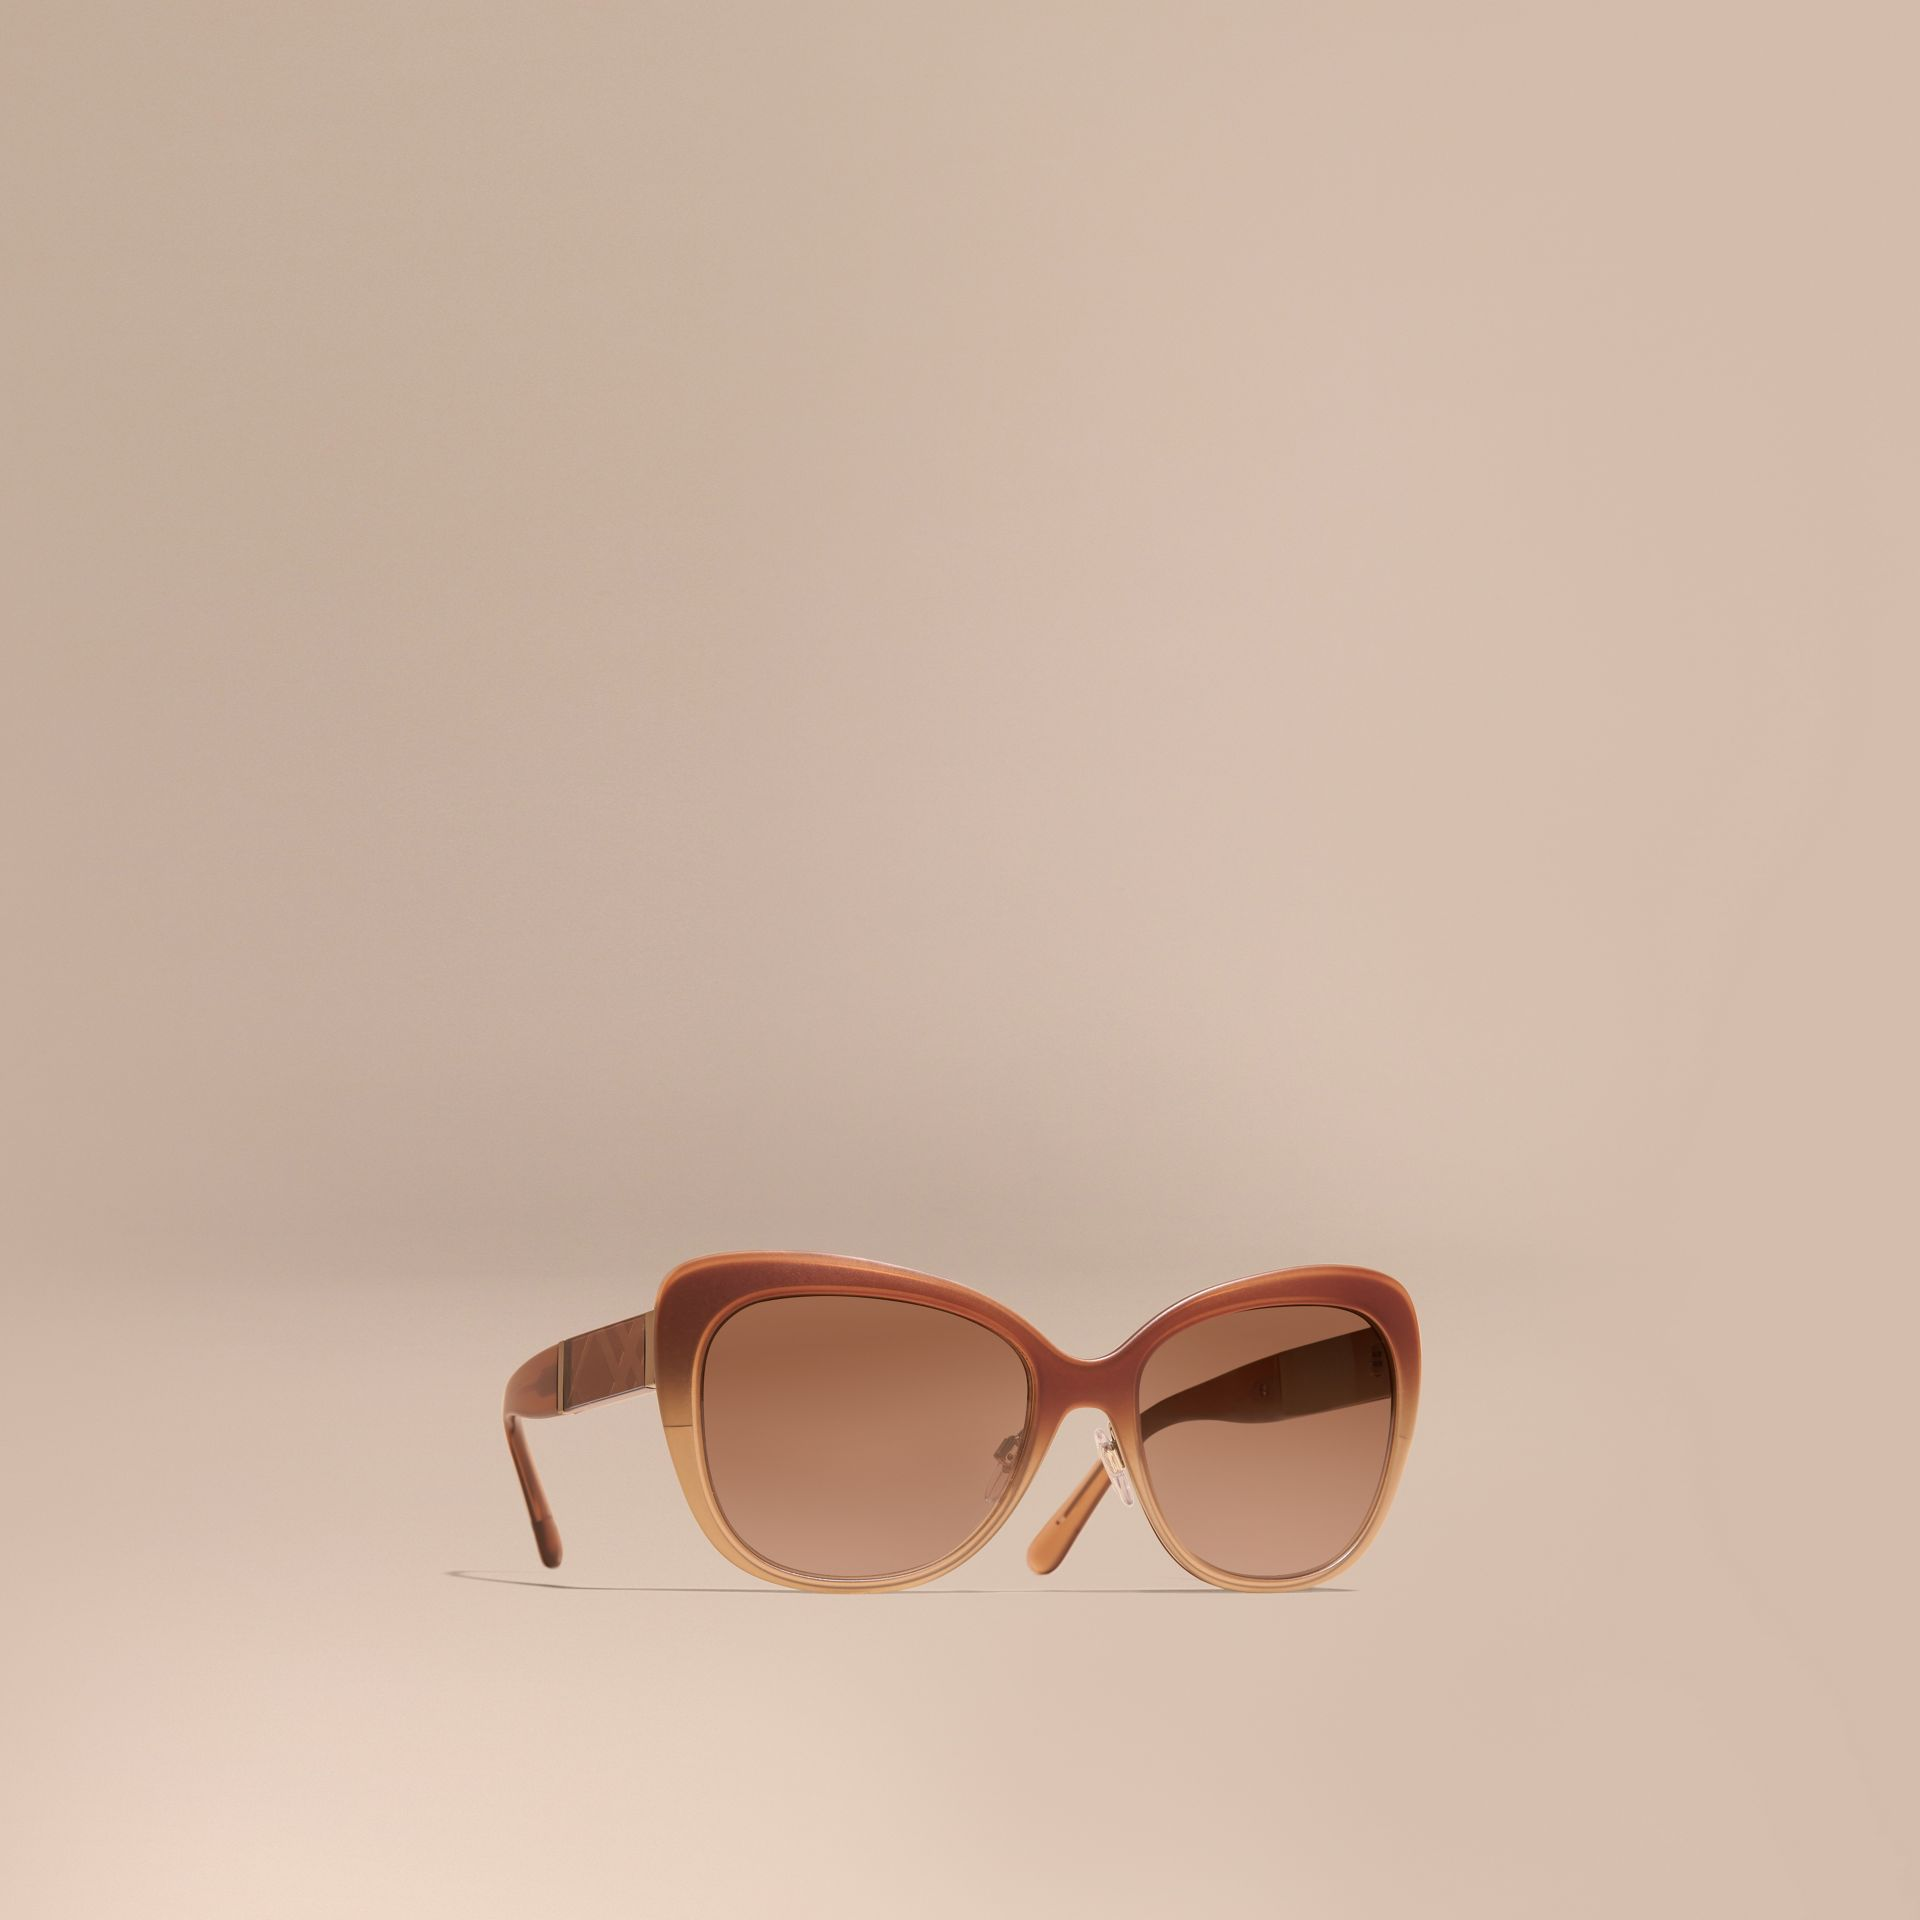 Carnation melange Check Detail Square Cat-eye Sunglasses Carnation Melange - gallery image 1